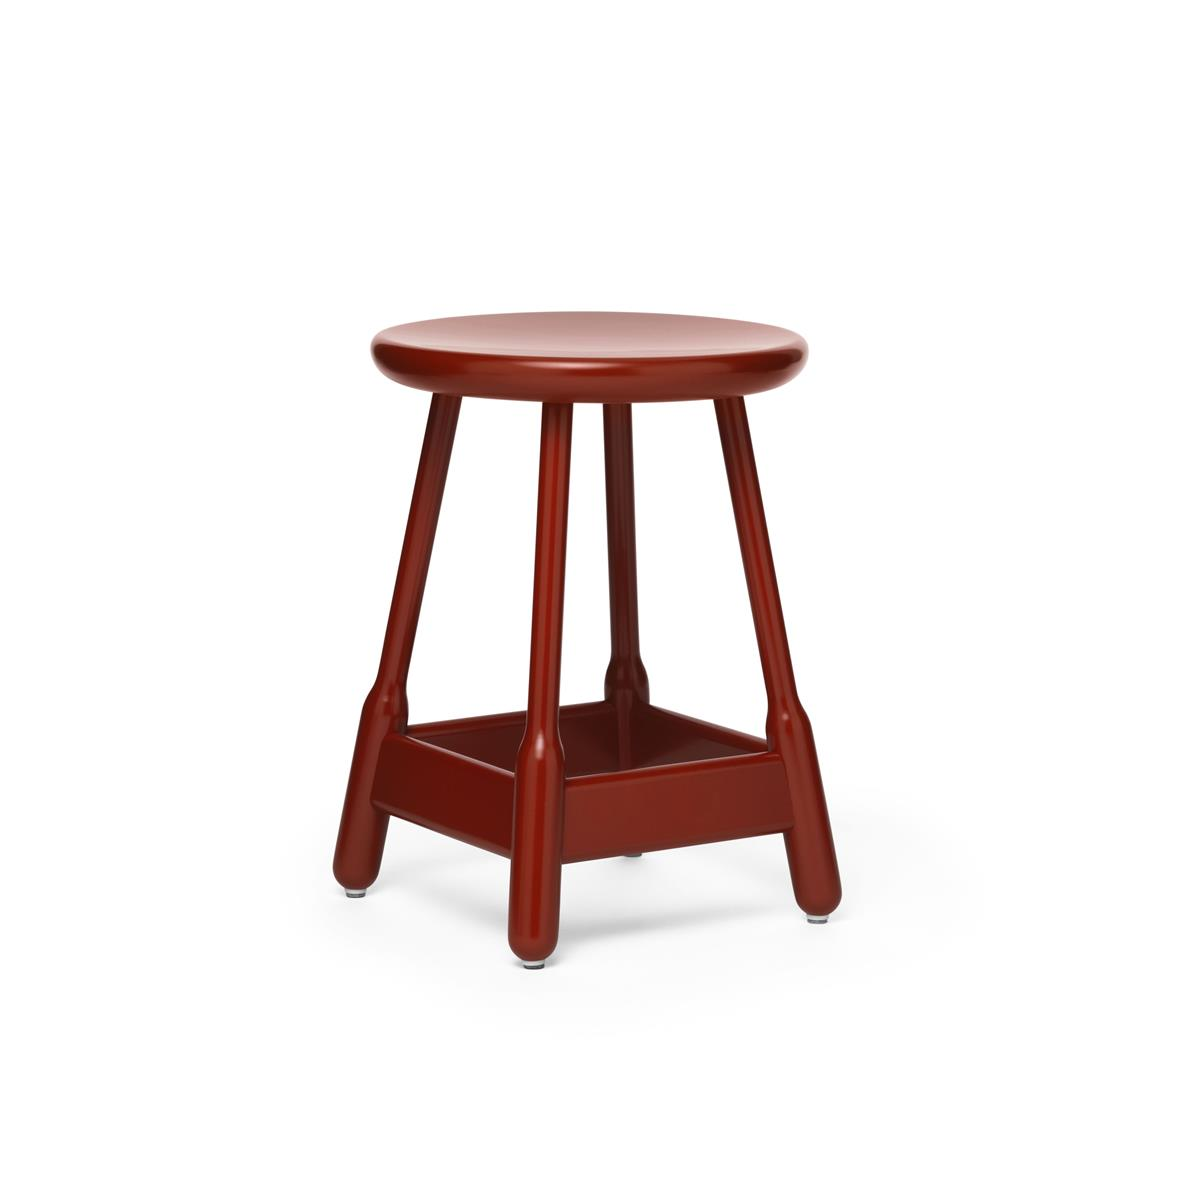 Albert Stool H50 cm - Red Lacquered